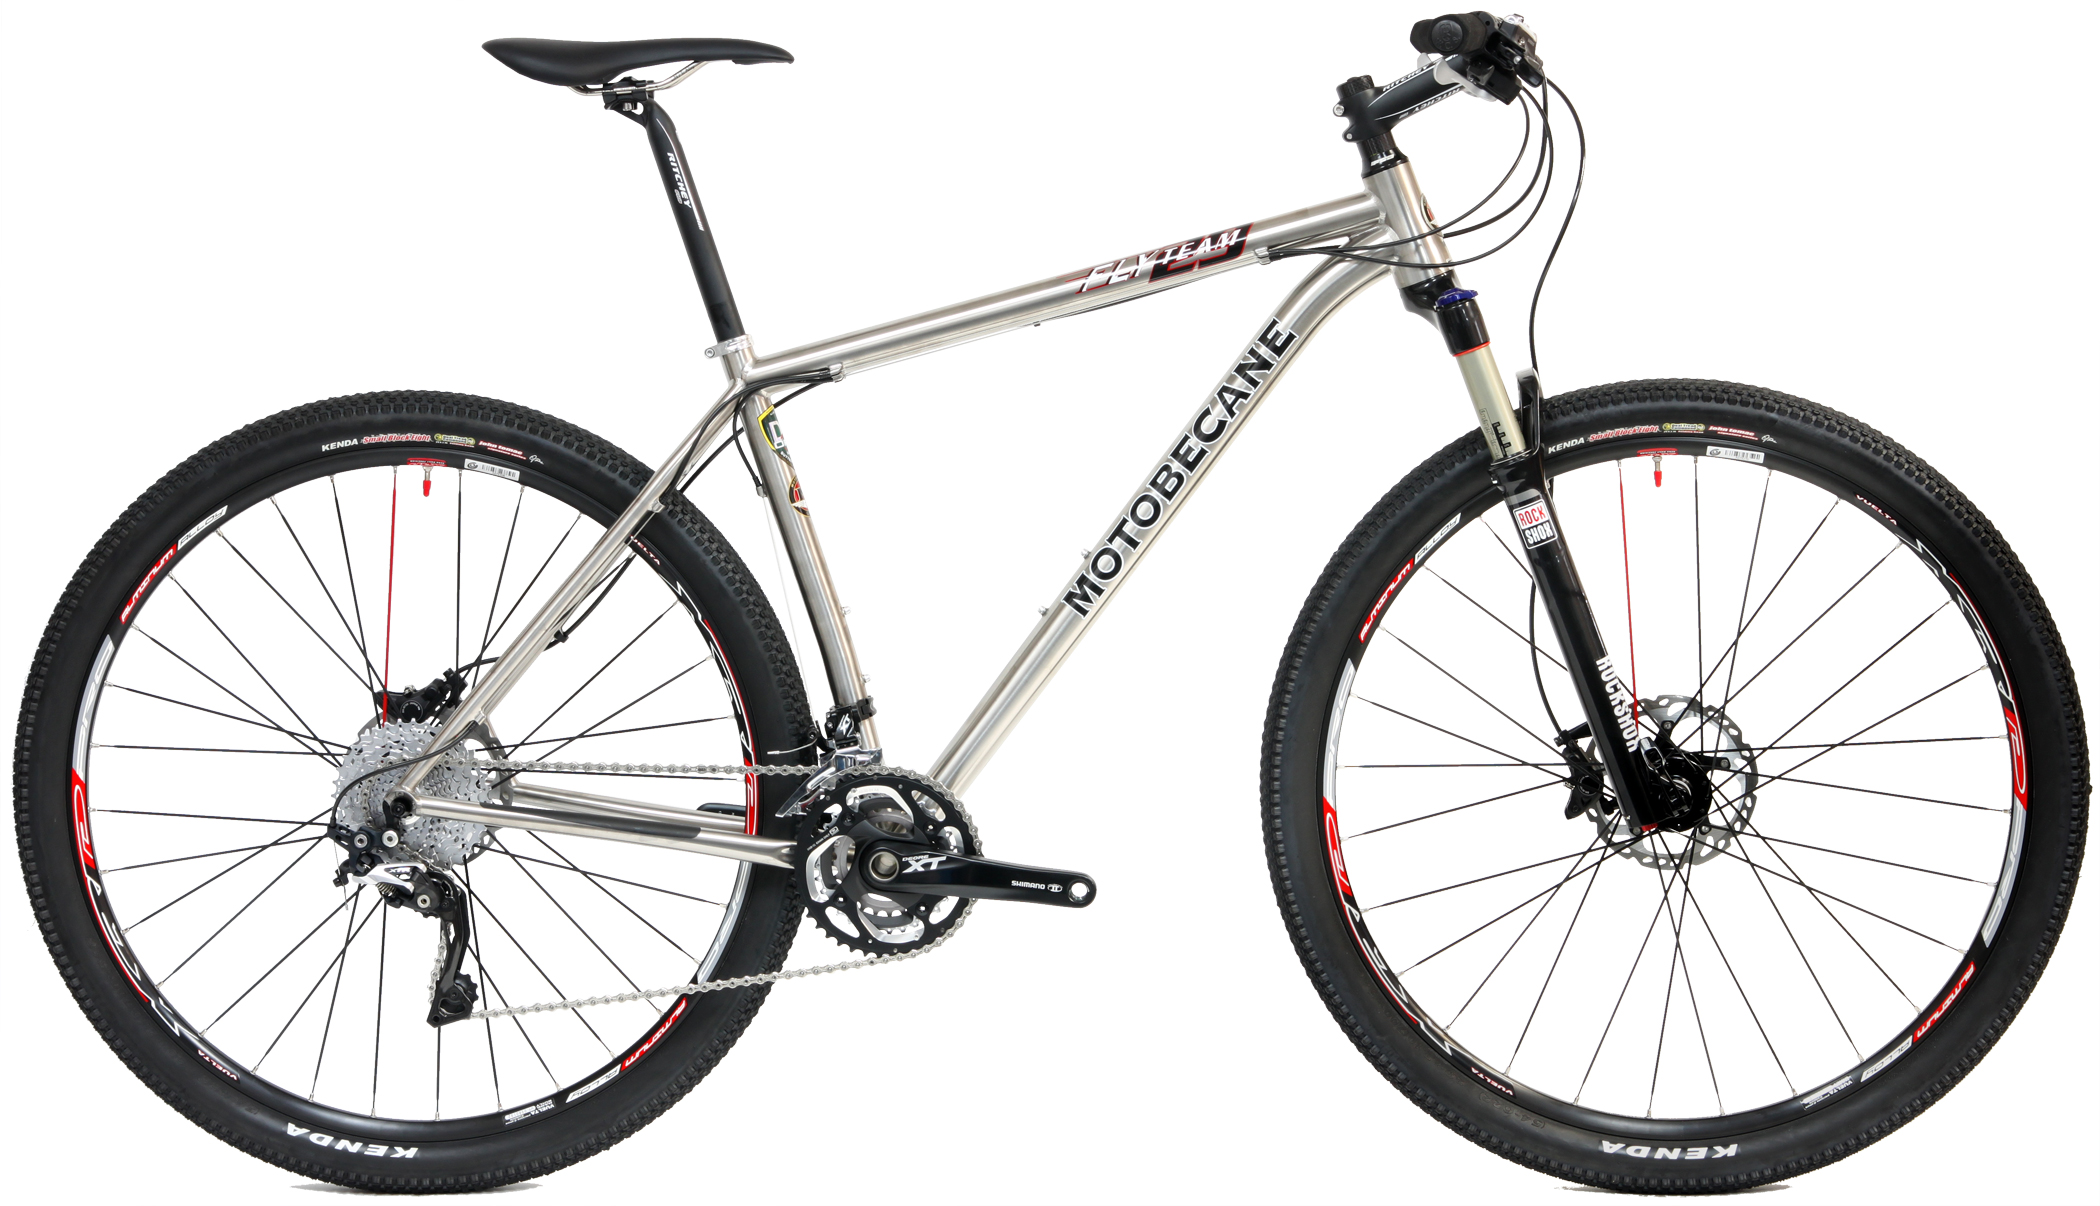 Save Up to 60% Off Shimano DynaSys, 3x10 Speed 29er